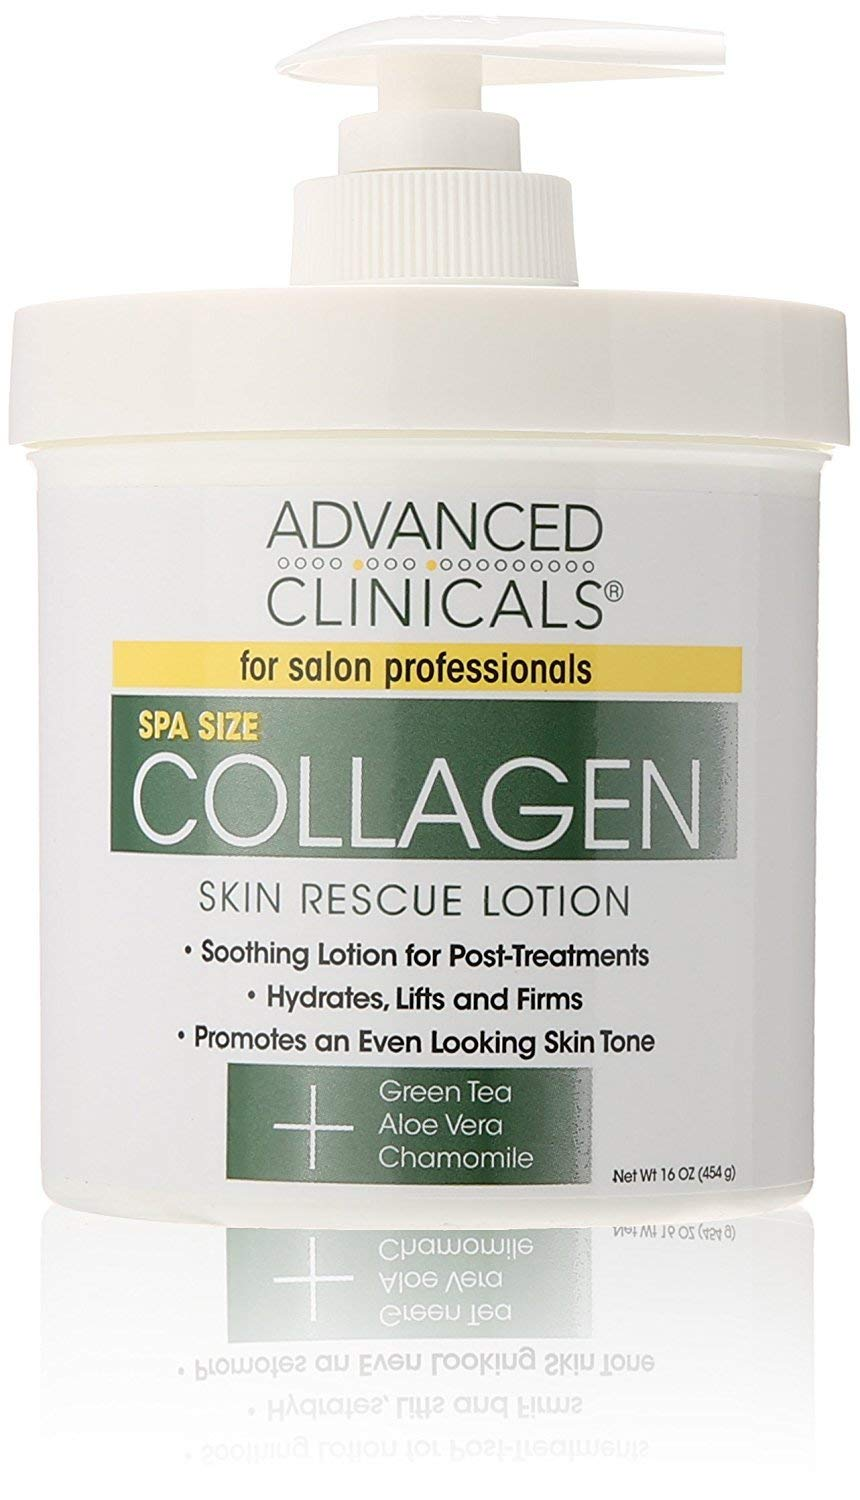 Advanced Clinicals Collagen Skin Rescue Lotion - Hydrate, Moisturize, Lift, Firm. Great for Dry Skin, 16 Ounce by Advanced Clinicals